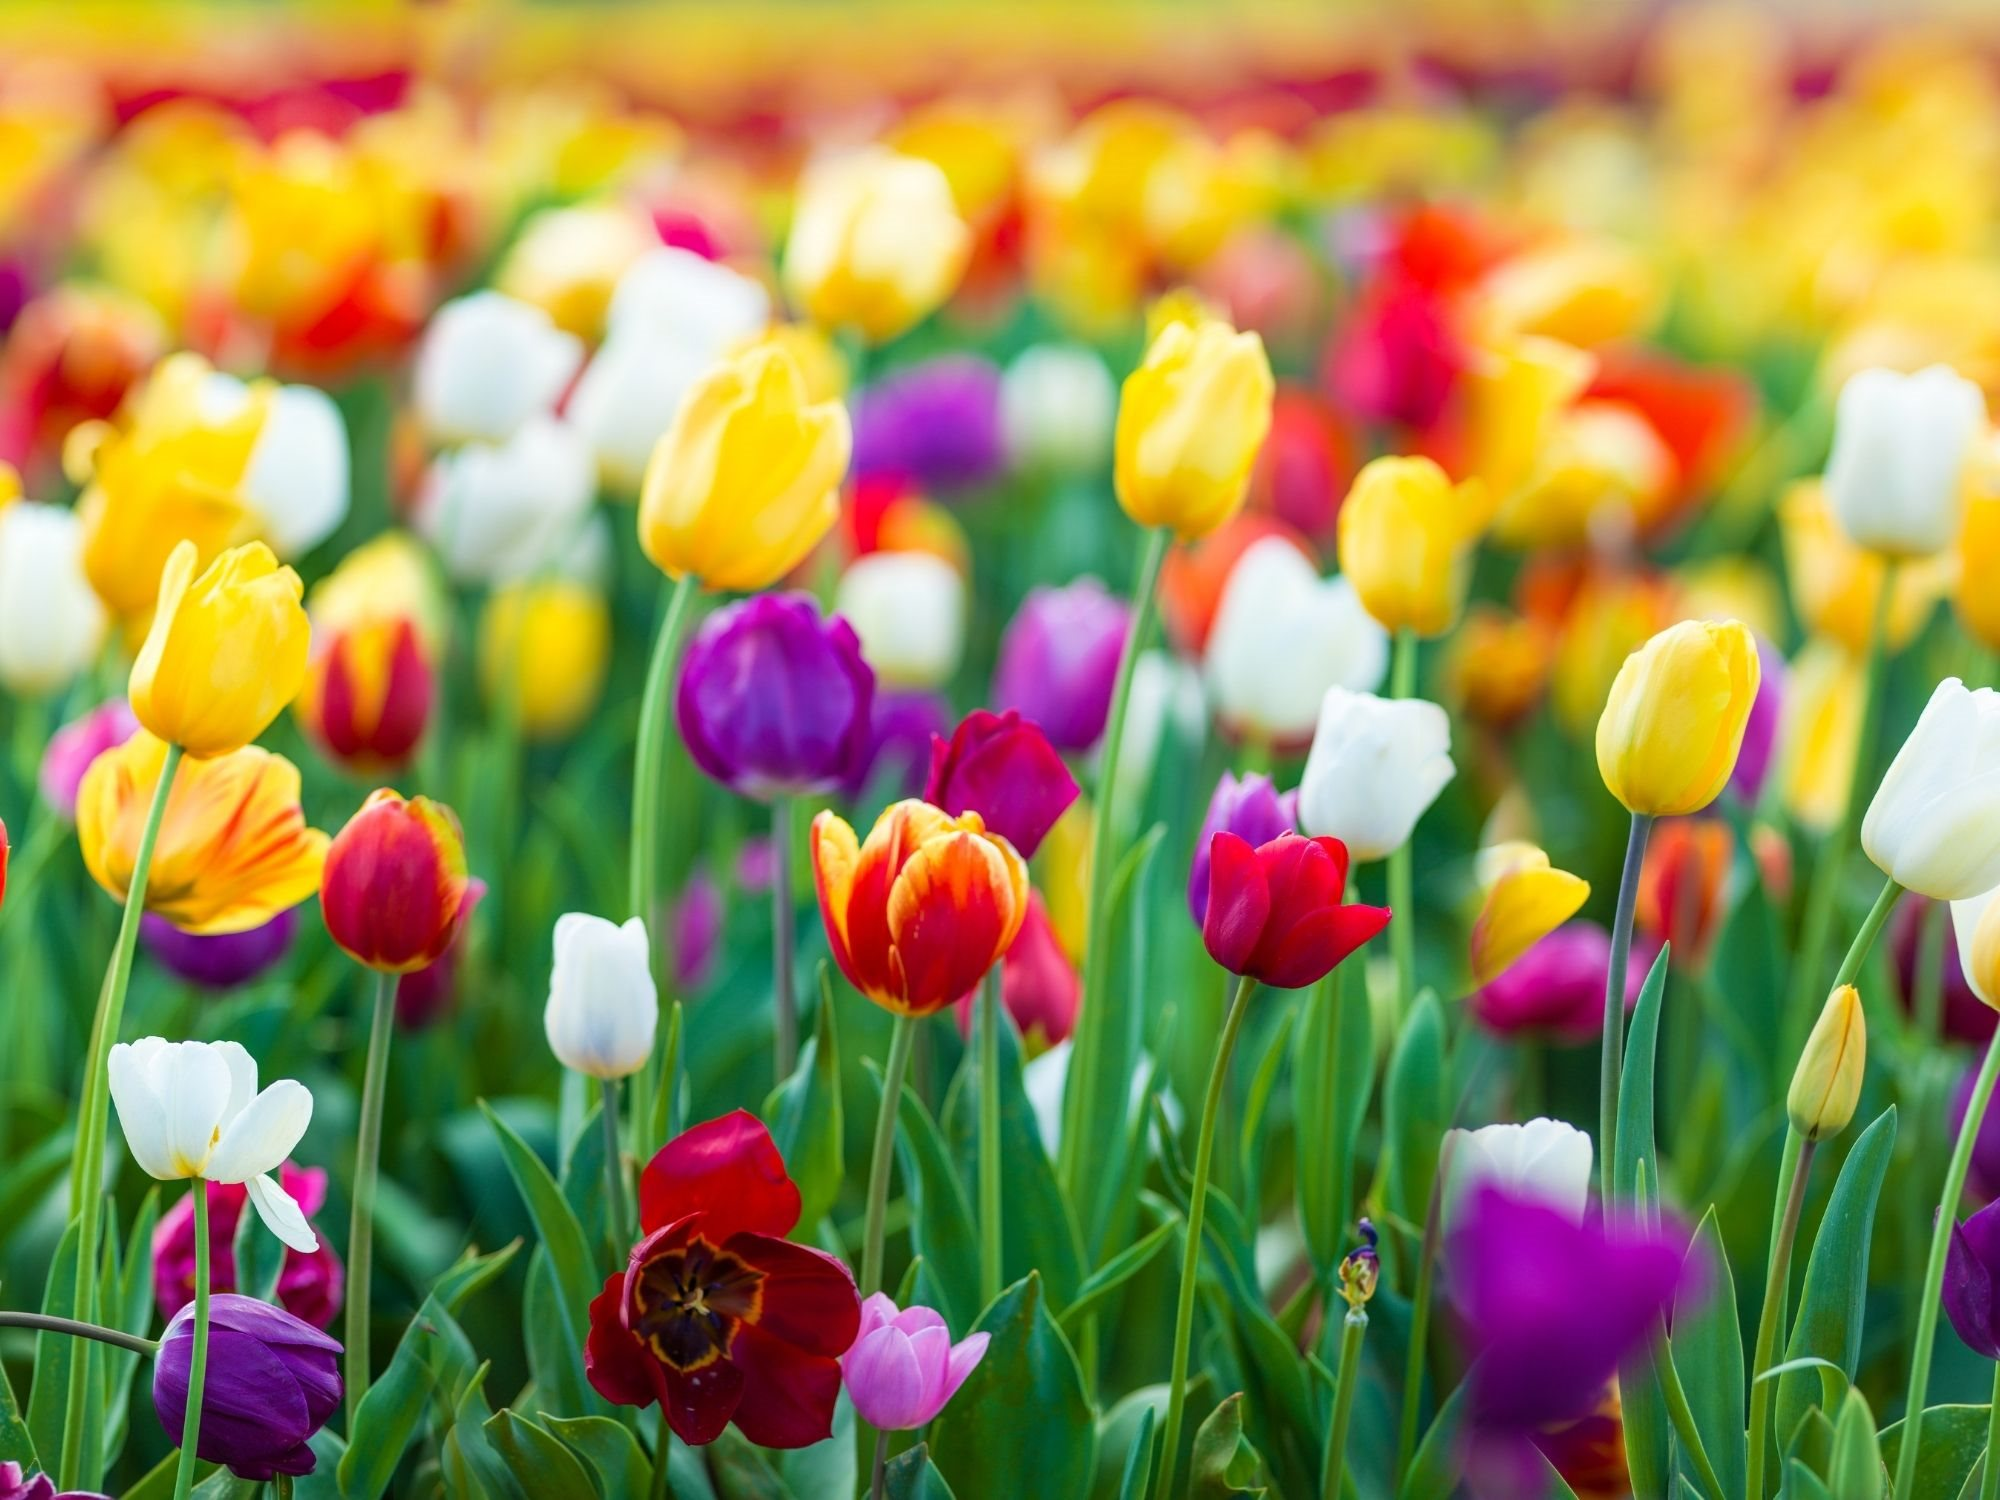 Tulips landscaping